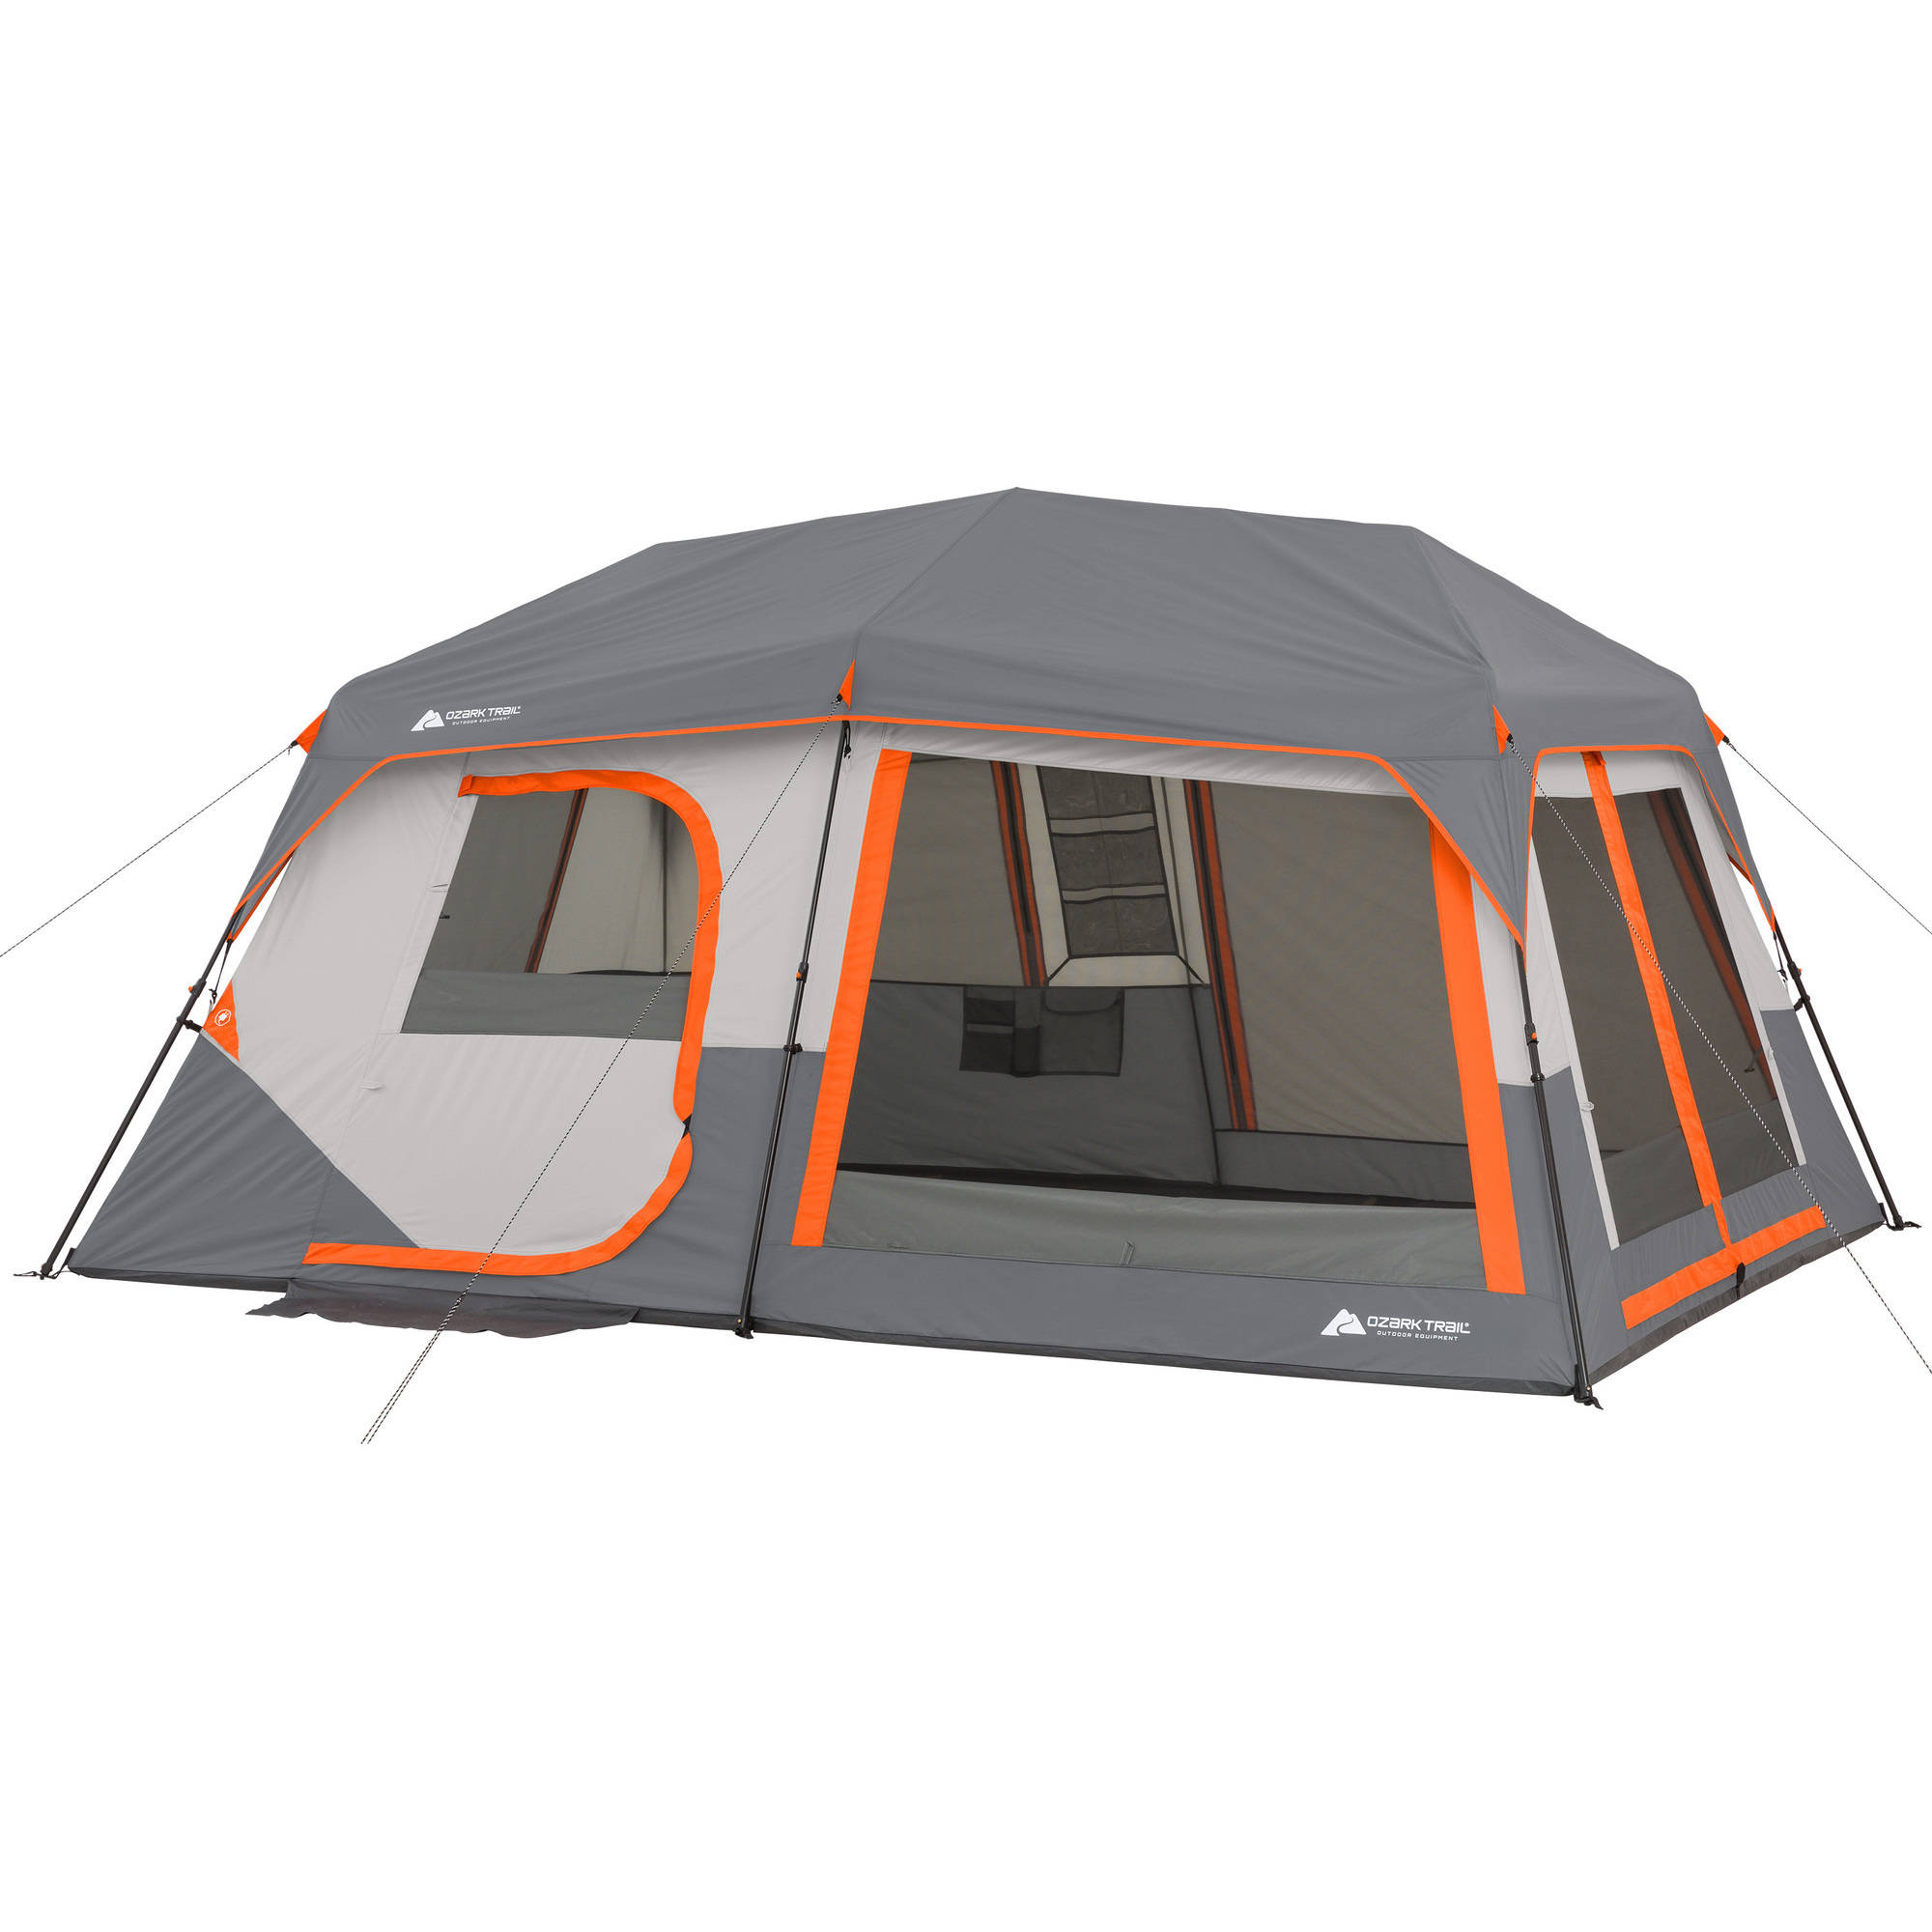 Ozark Trail 14u0027 x 10u0027 x 78  Instant Cabin Tent with Light  sc 1 st  Walmart : replacement parts for ozark trail tents - memphite.com